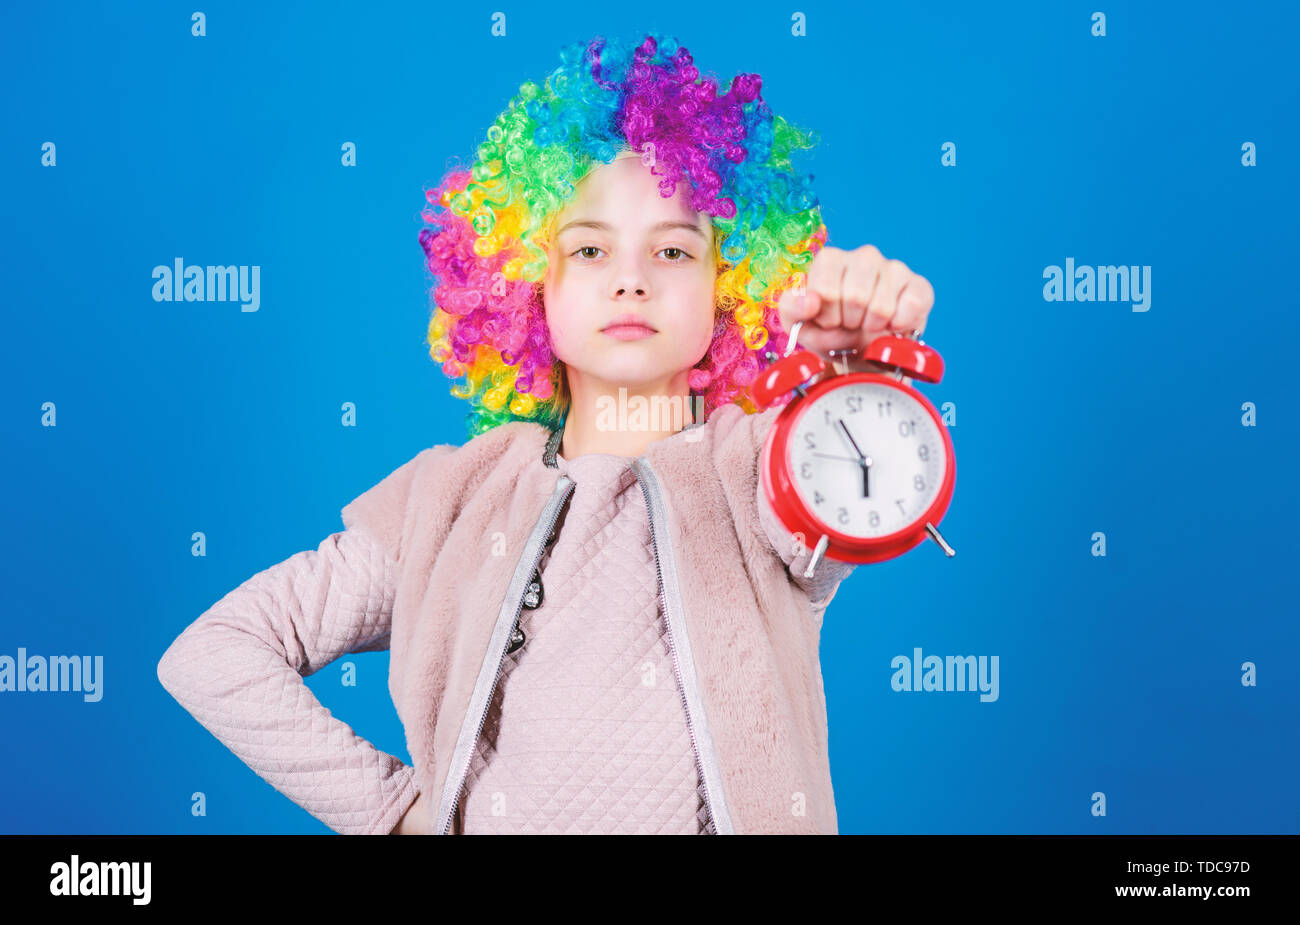 Punctuality is a kingly virtue. Cute little child demanding punctuality. Adorable small girl strictly observing punctuality. Punctuality concept. - Stock Image